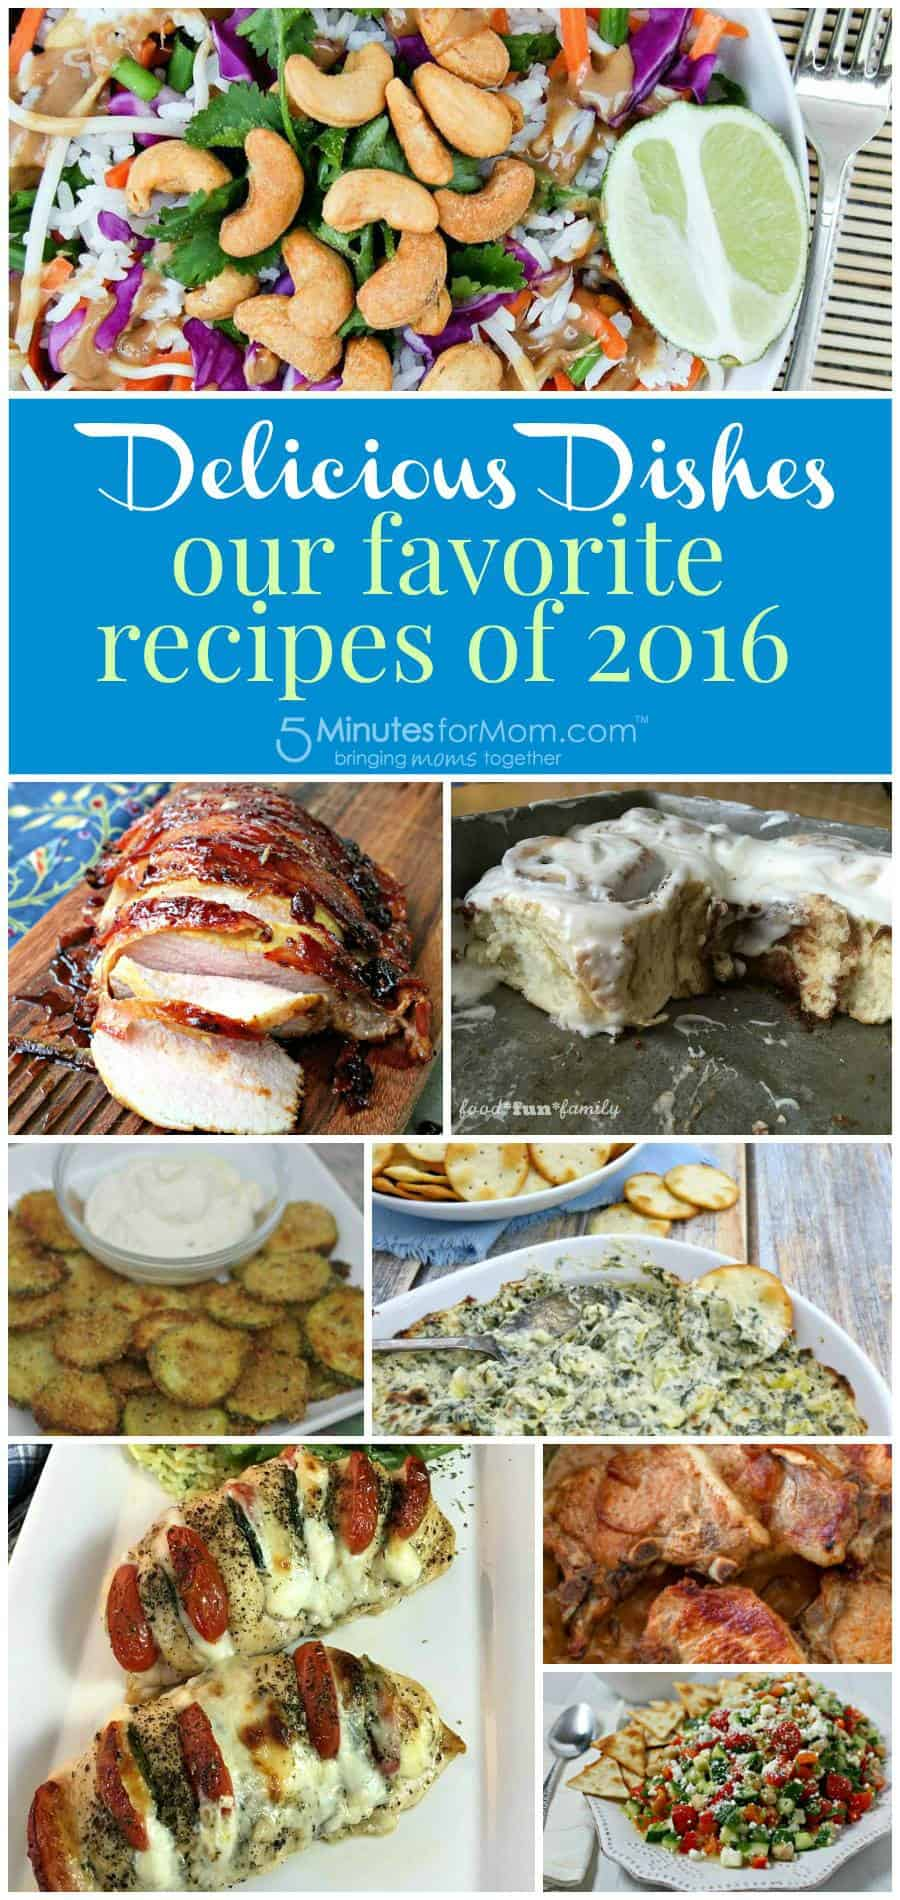 Delicious Dishes Recipes